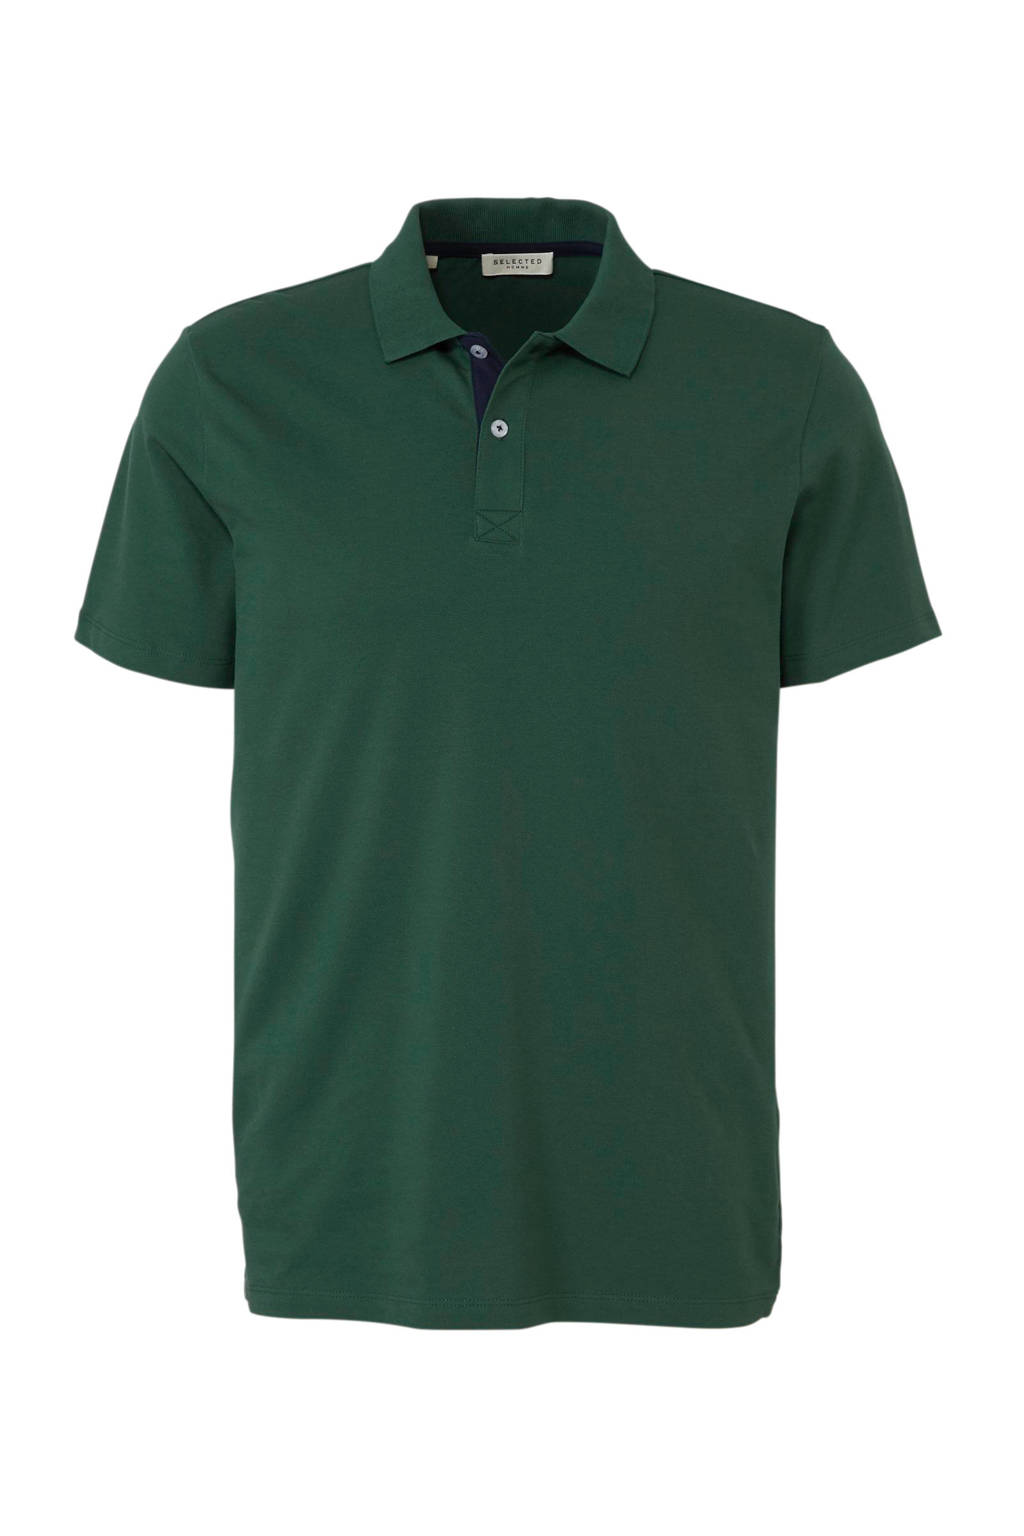 SELECTED HOMME polo, Groen